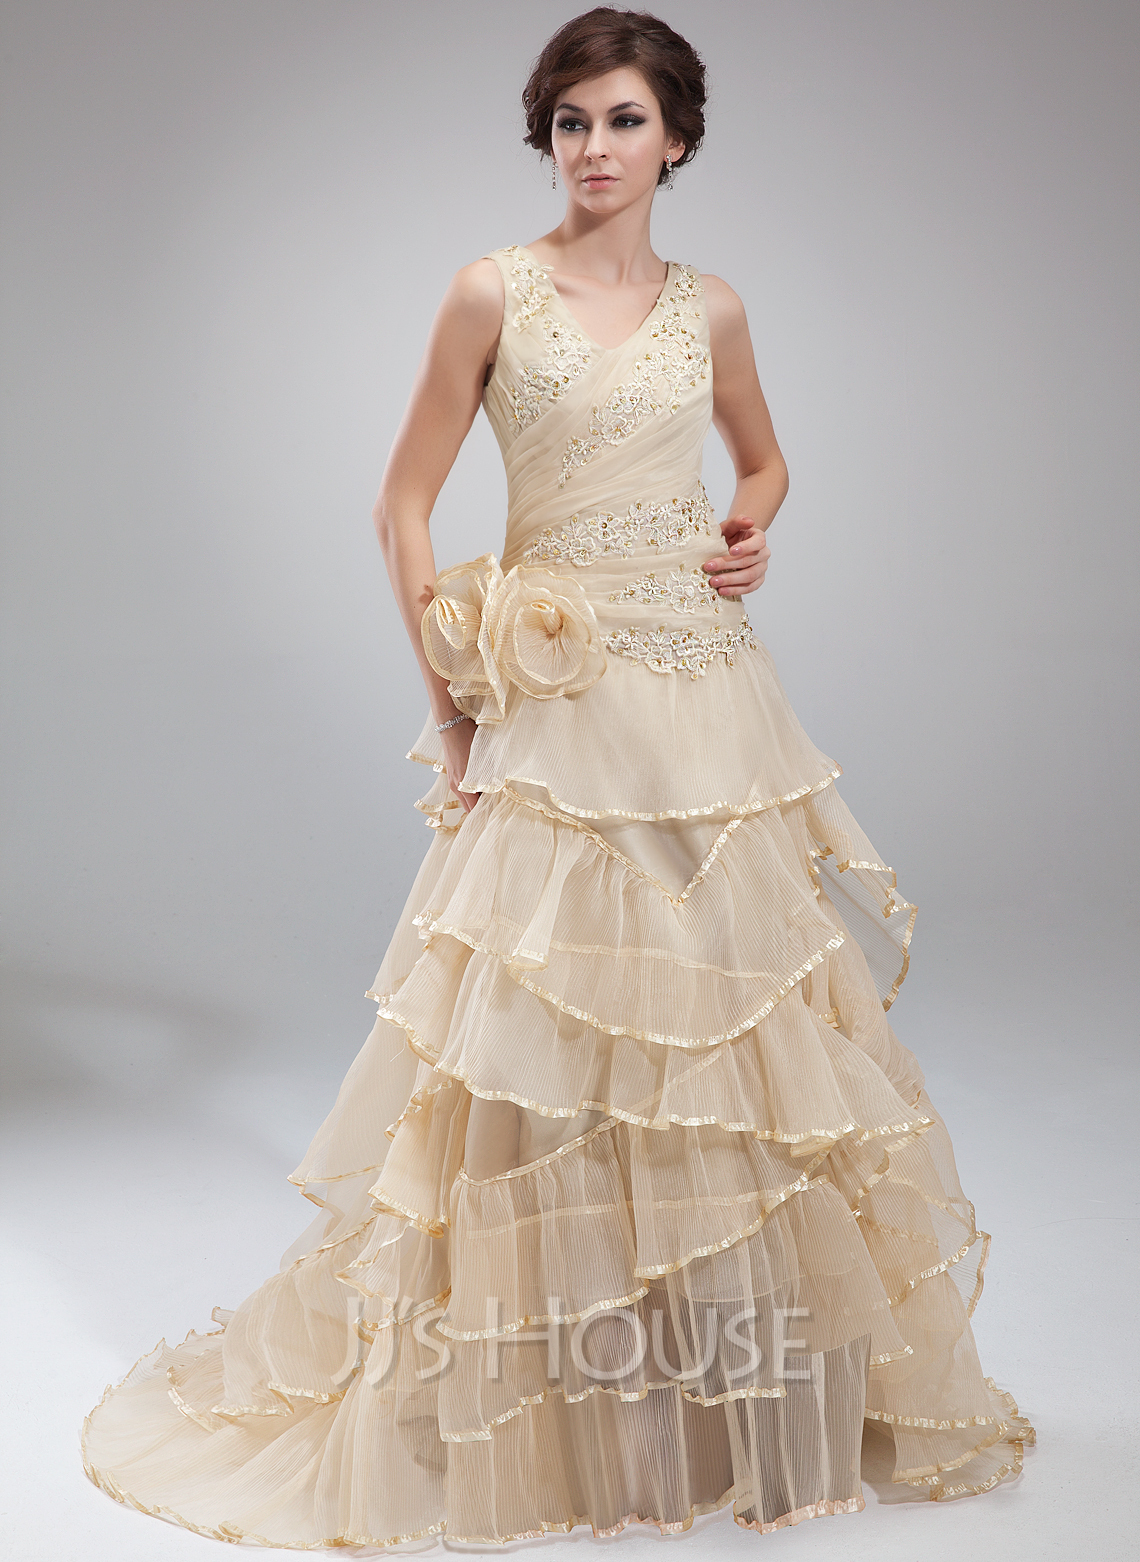 Dress with beading appliques lace flower s cascading ruffles pleated